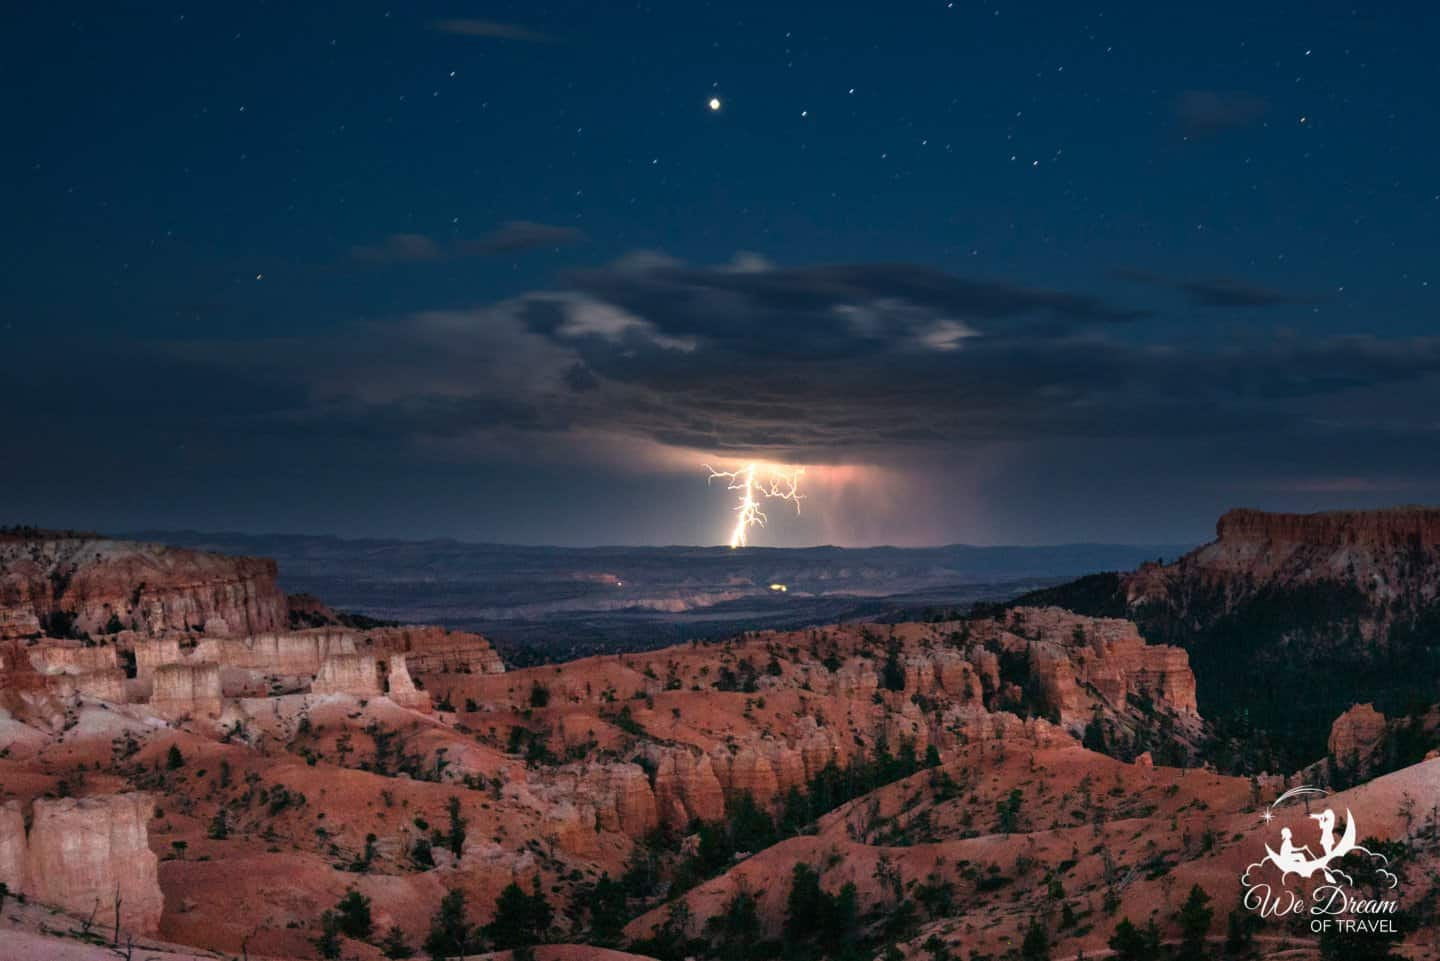 A lightning storm puts on a show, viewed from Bryce Canyon in the direction of Zion NP.